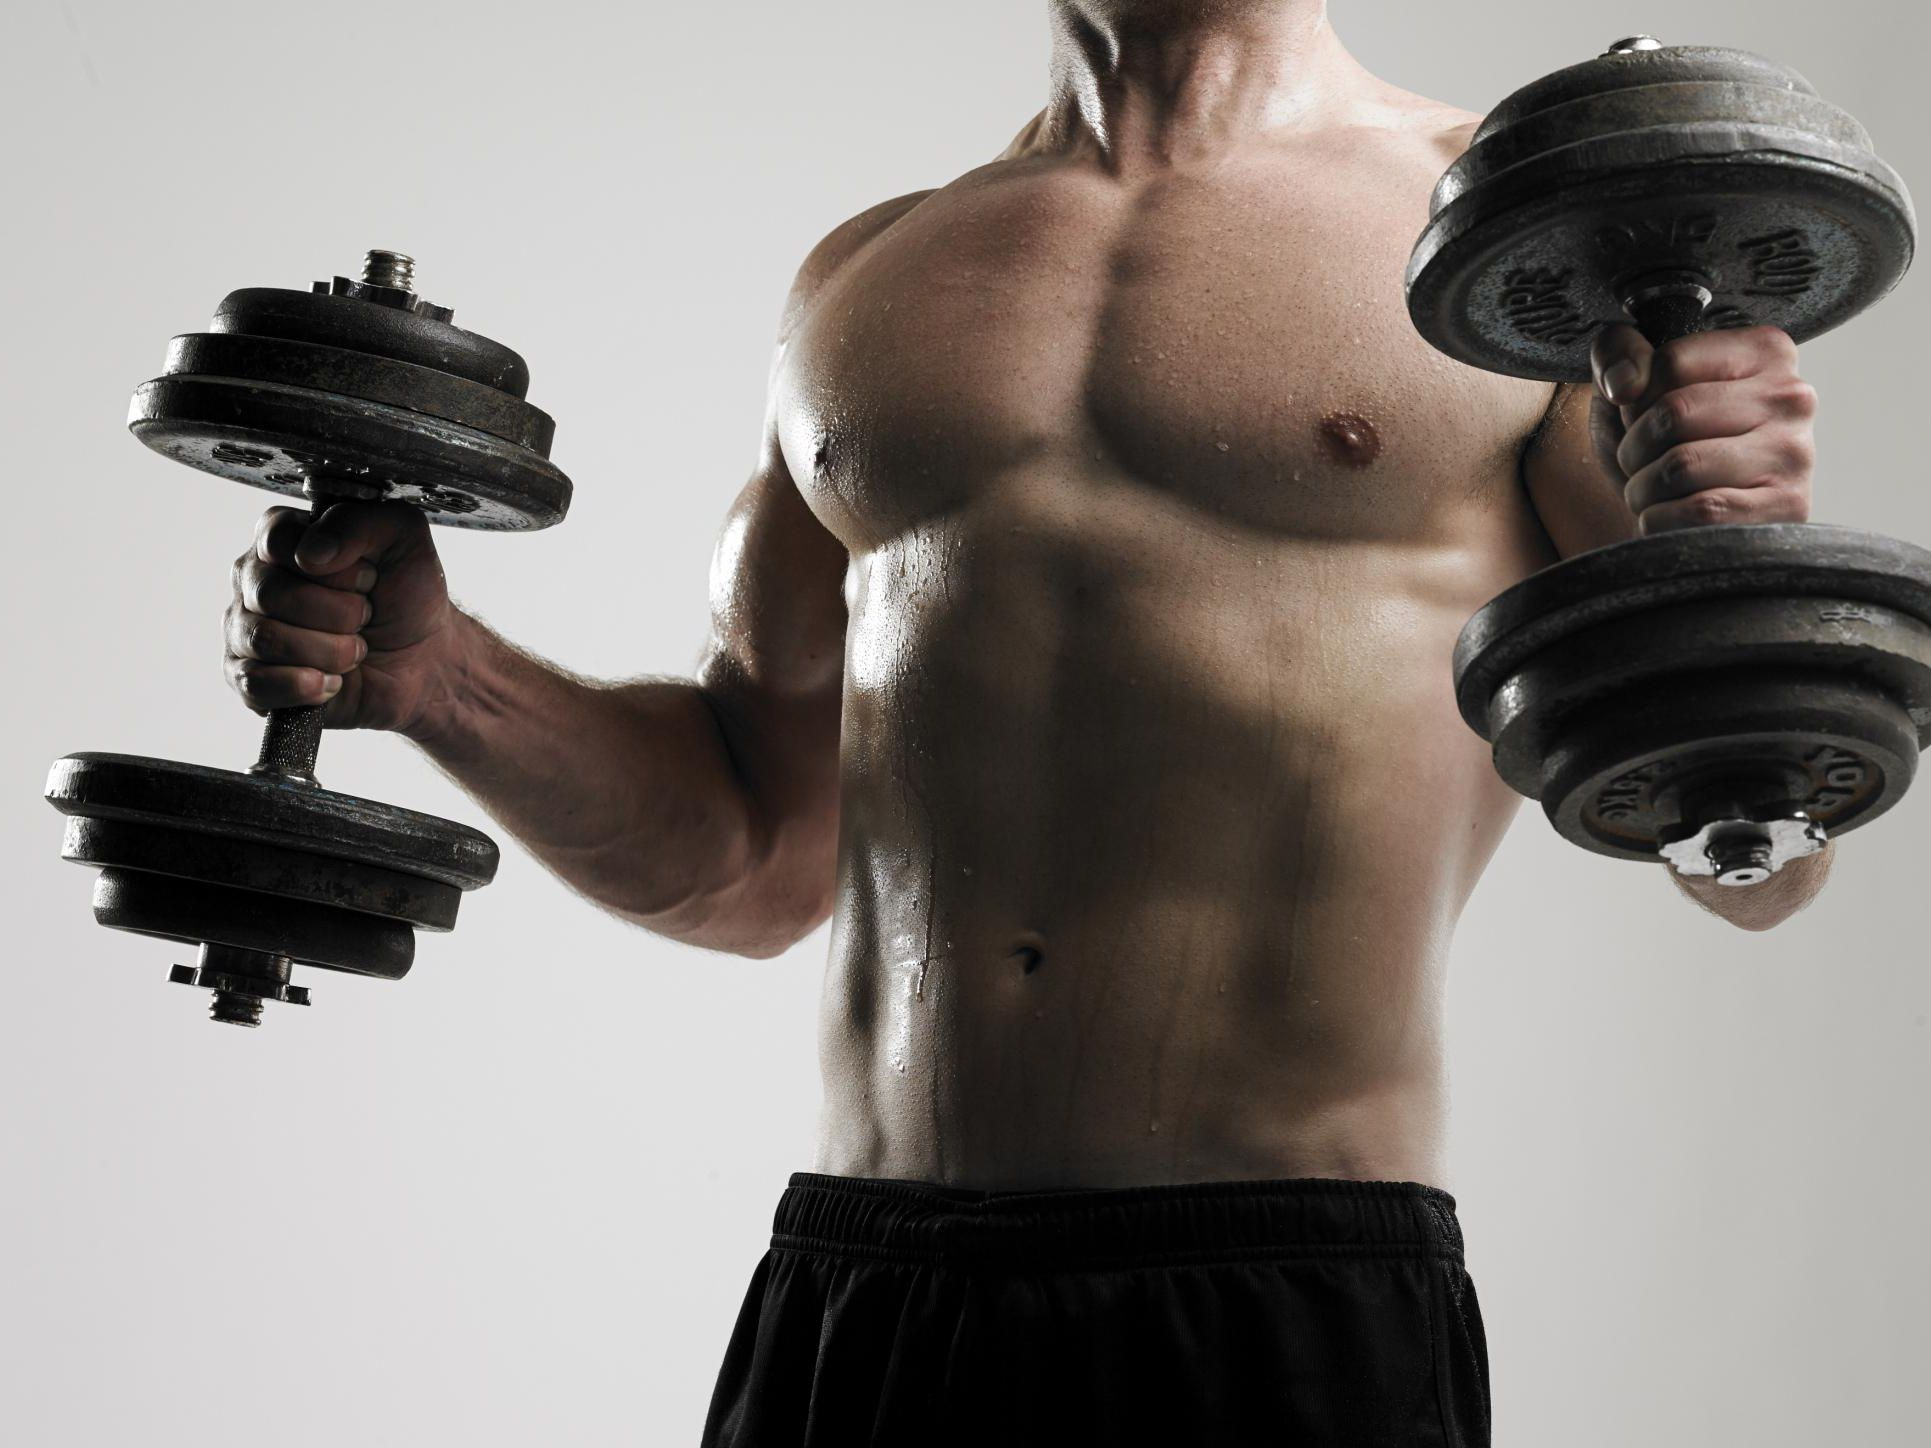 Free Bodybuilding Guide - Lose Fat and Gain Muscle